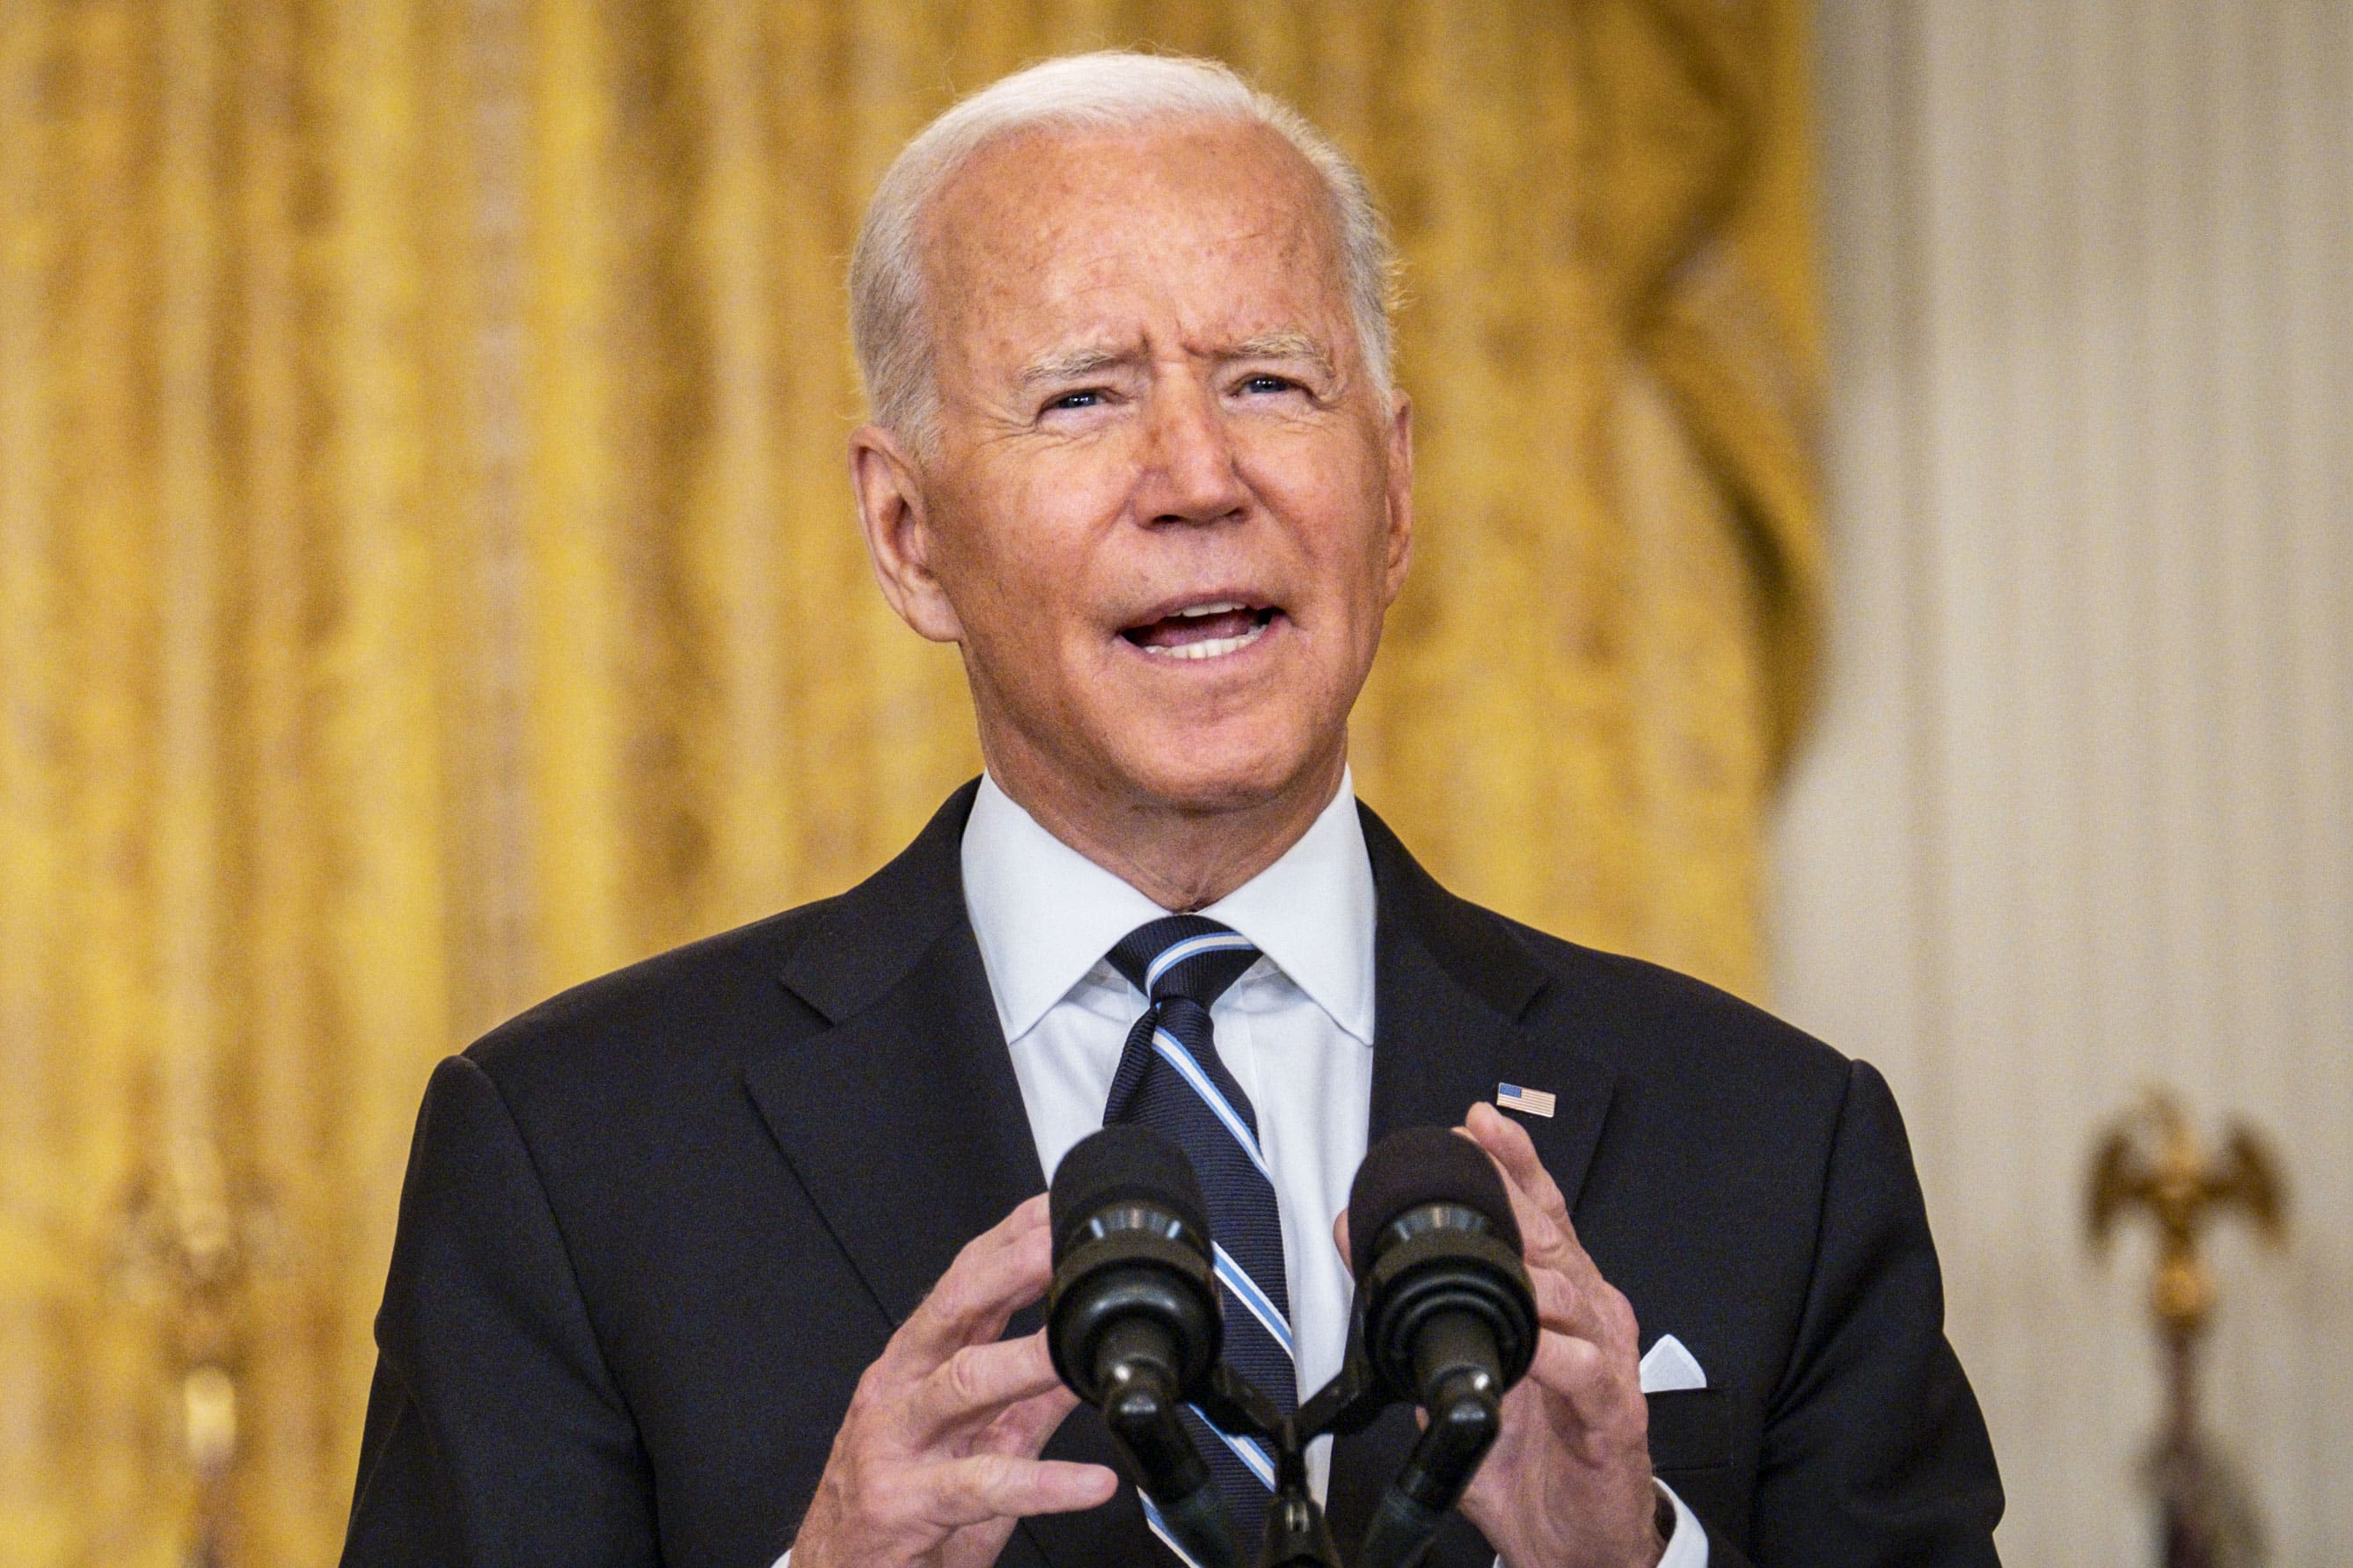 'Please get vaccinated now,' Biden urges after FDA approves Pfizer Covid shots